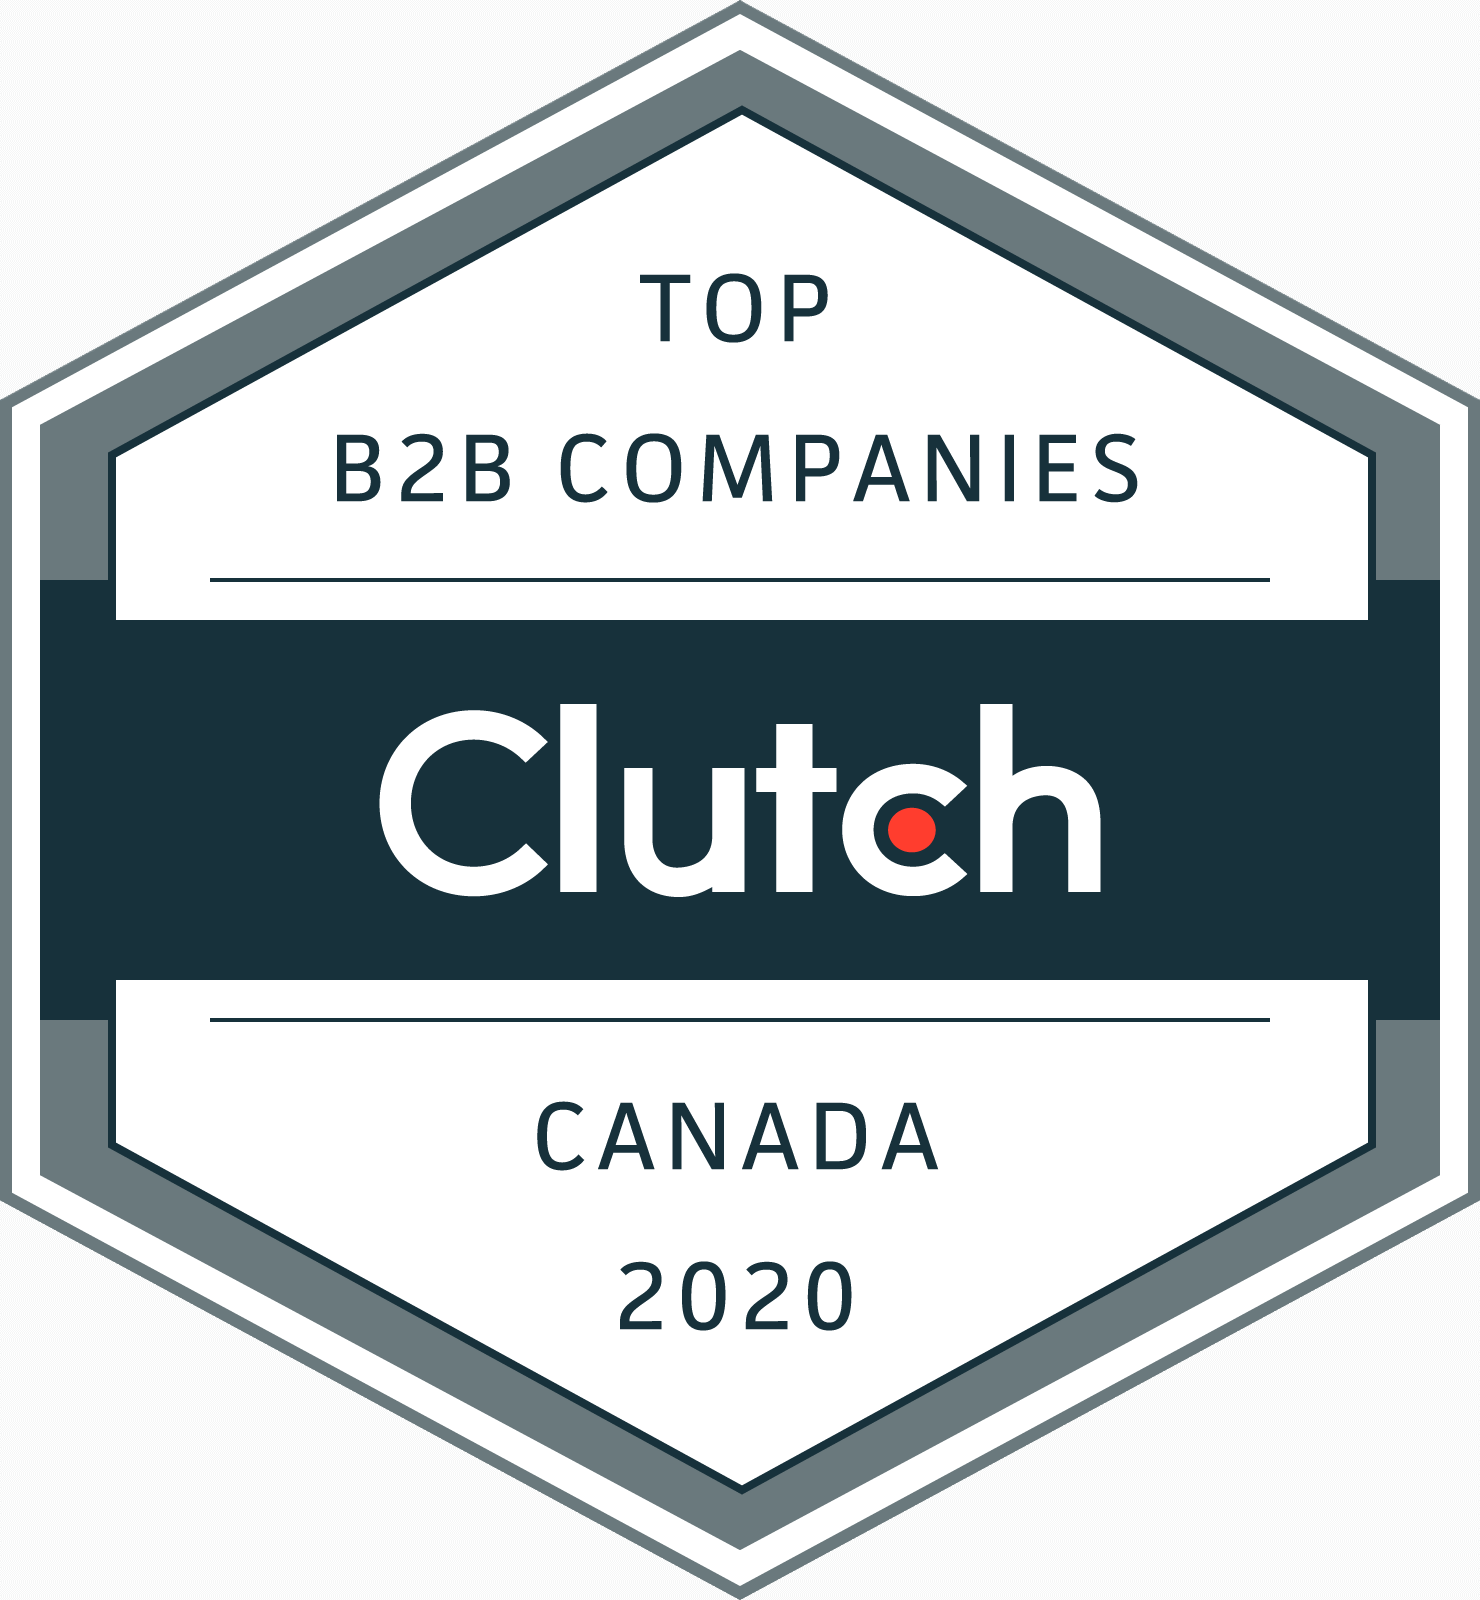 Wisdek Corp. Named a Top Advertising & Marketing Leader by Clutch